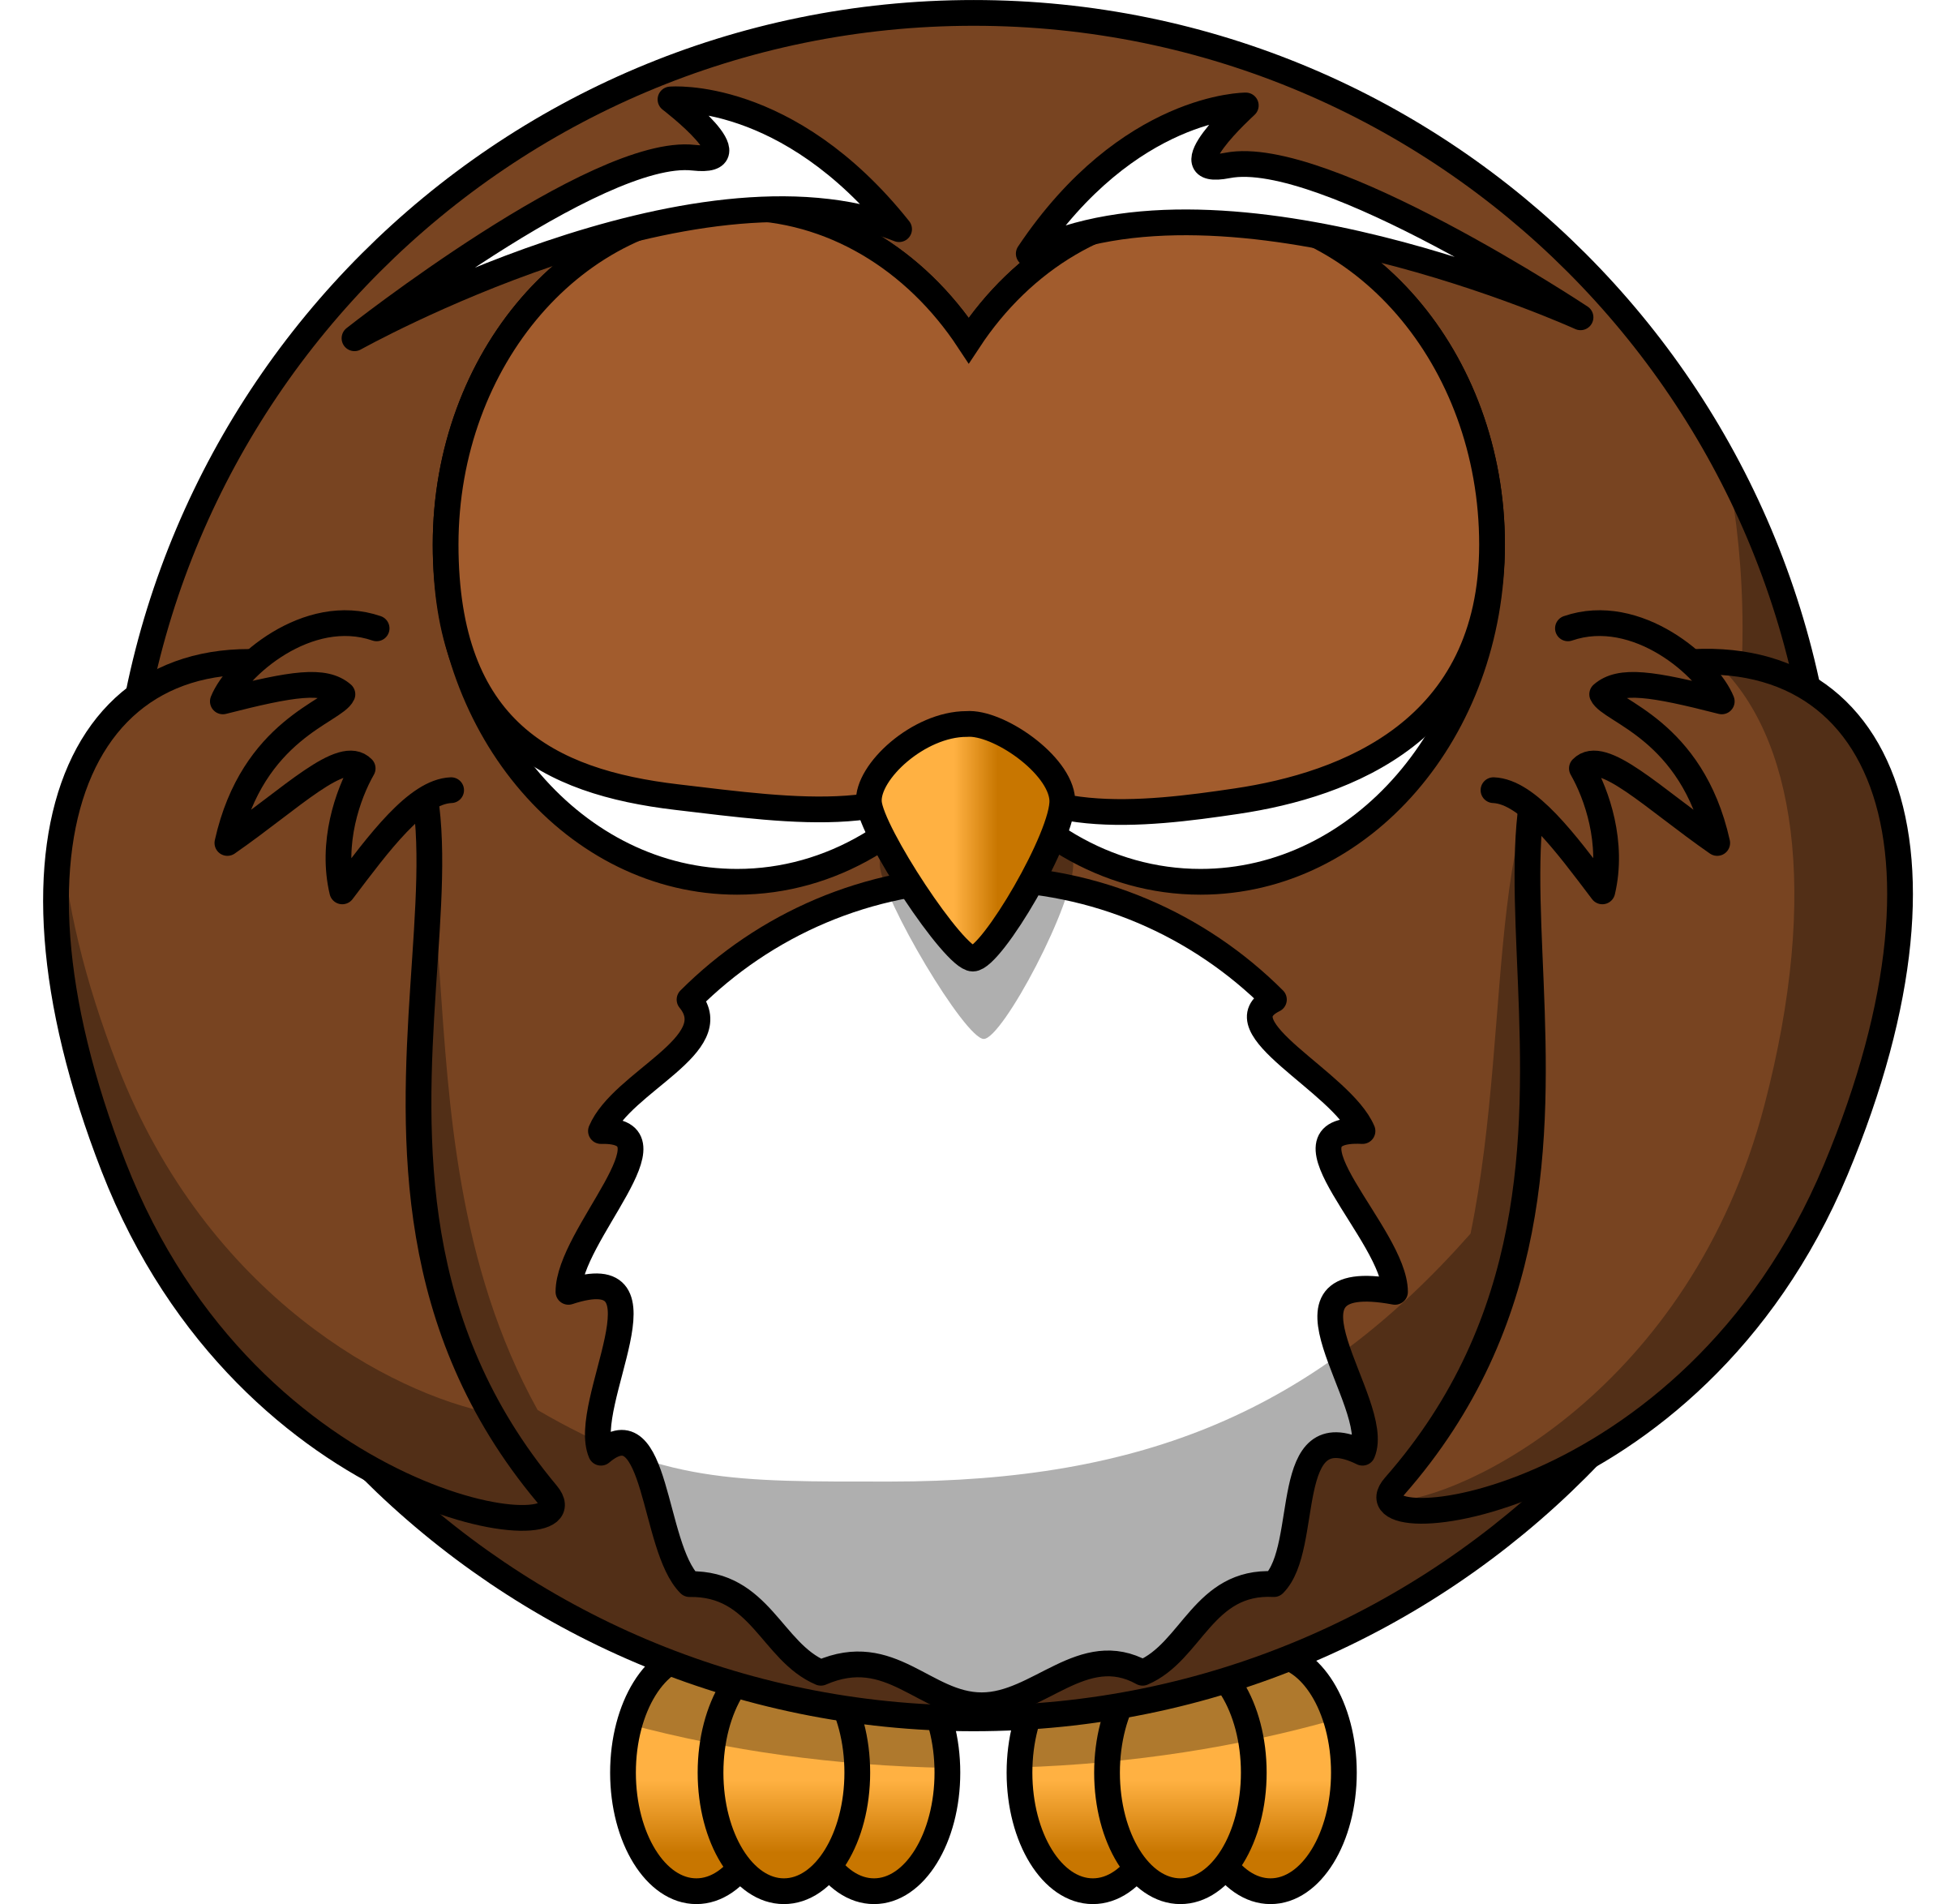 Sleeping in book clipart png download Clipart - Cartoon owl - asleep png download